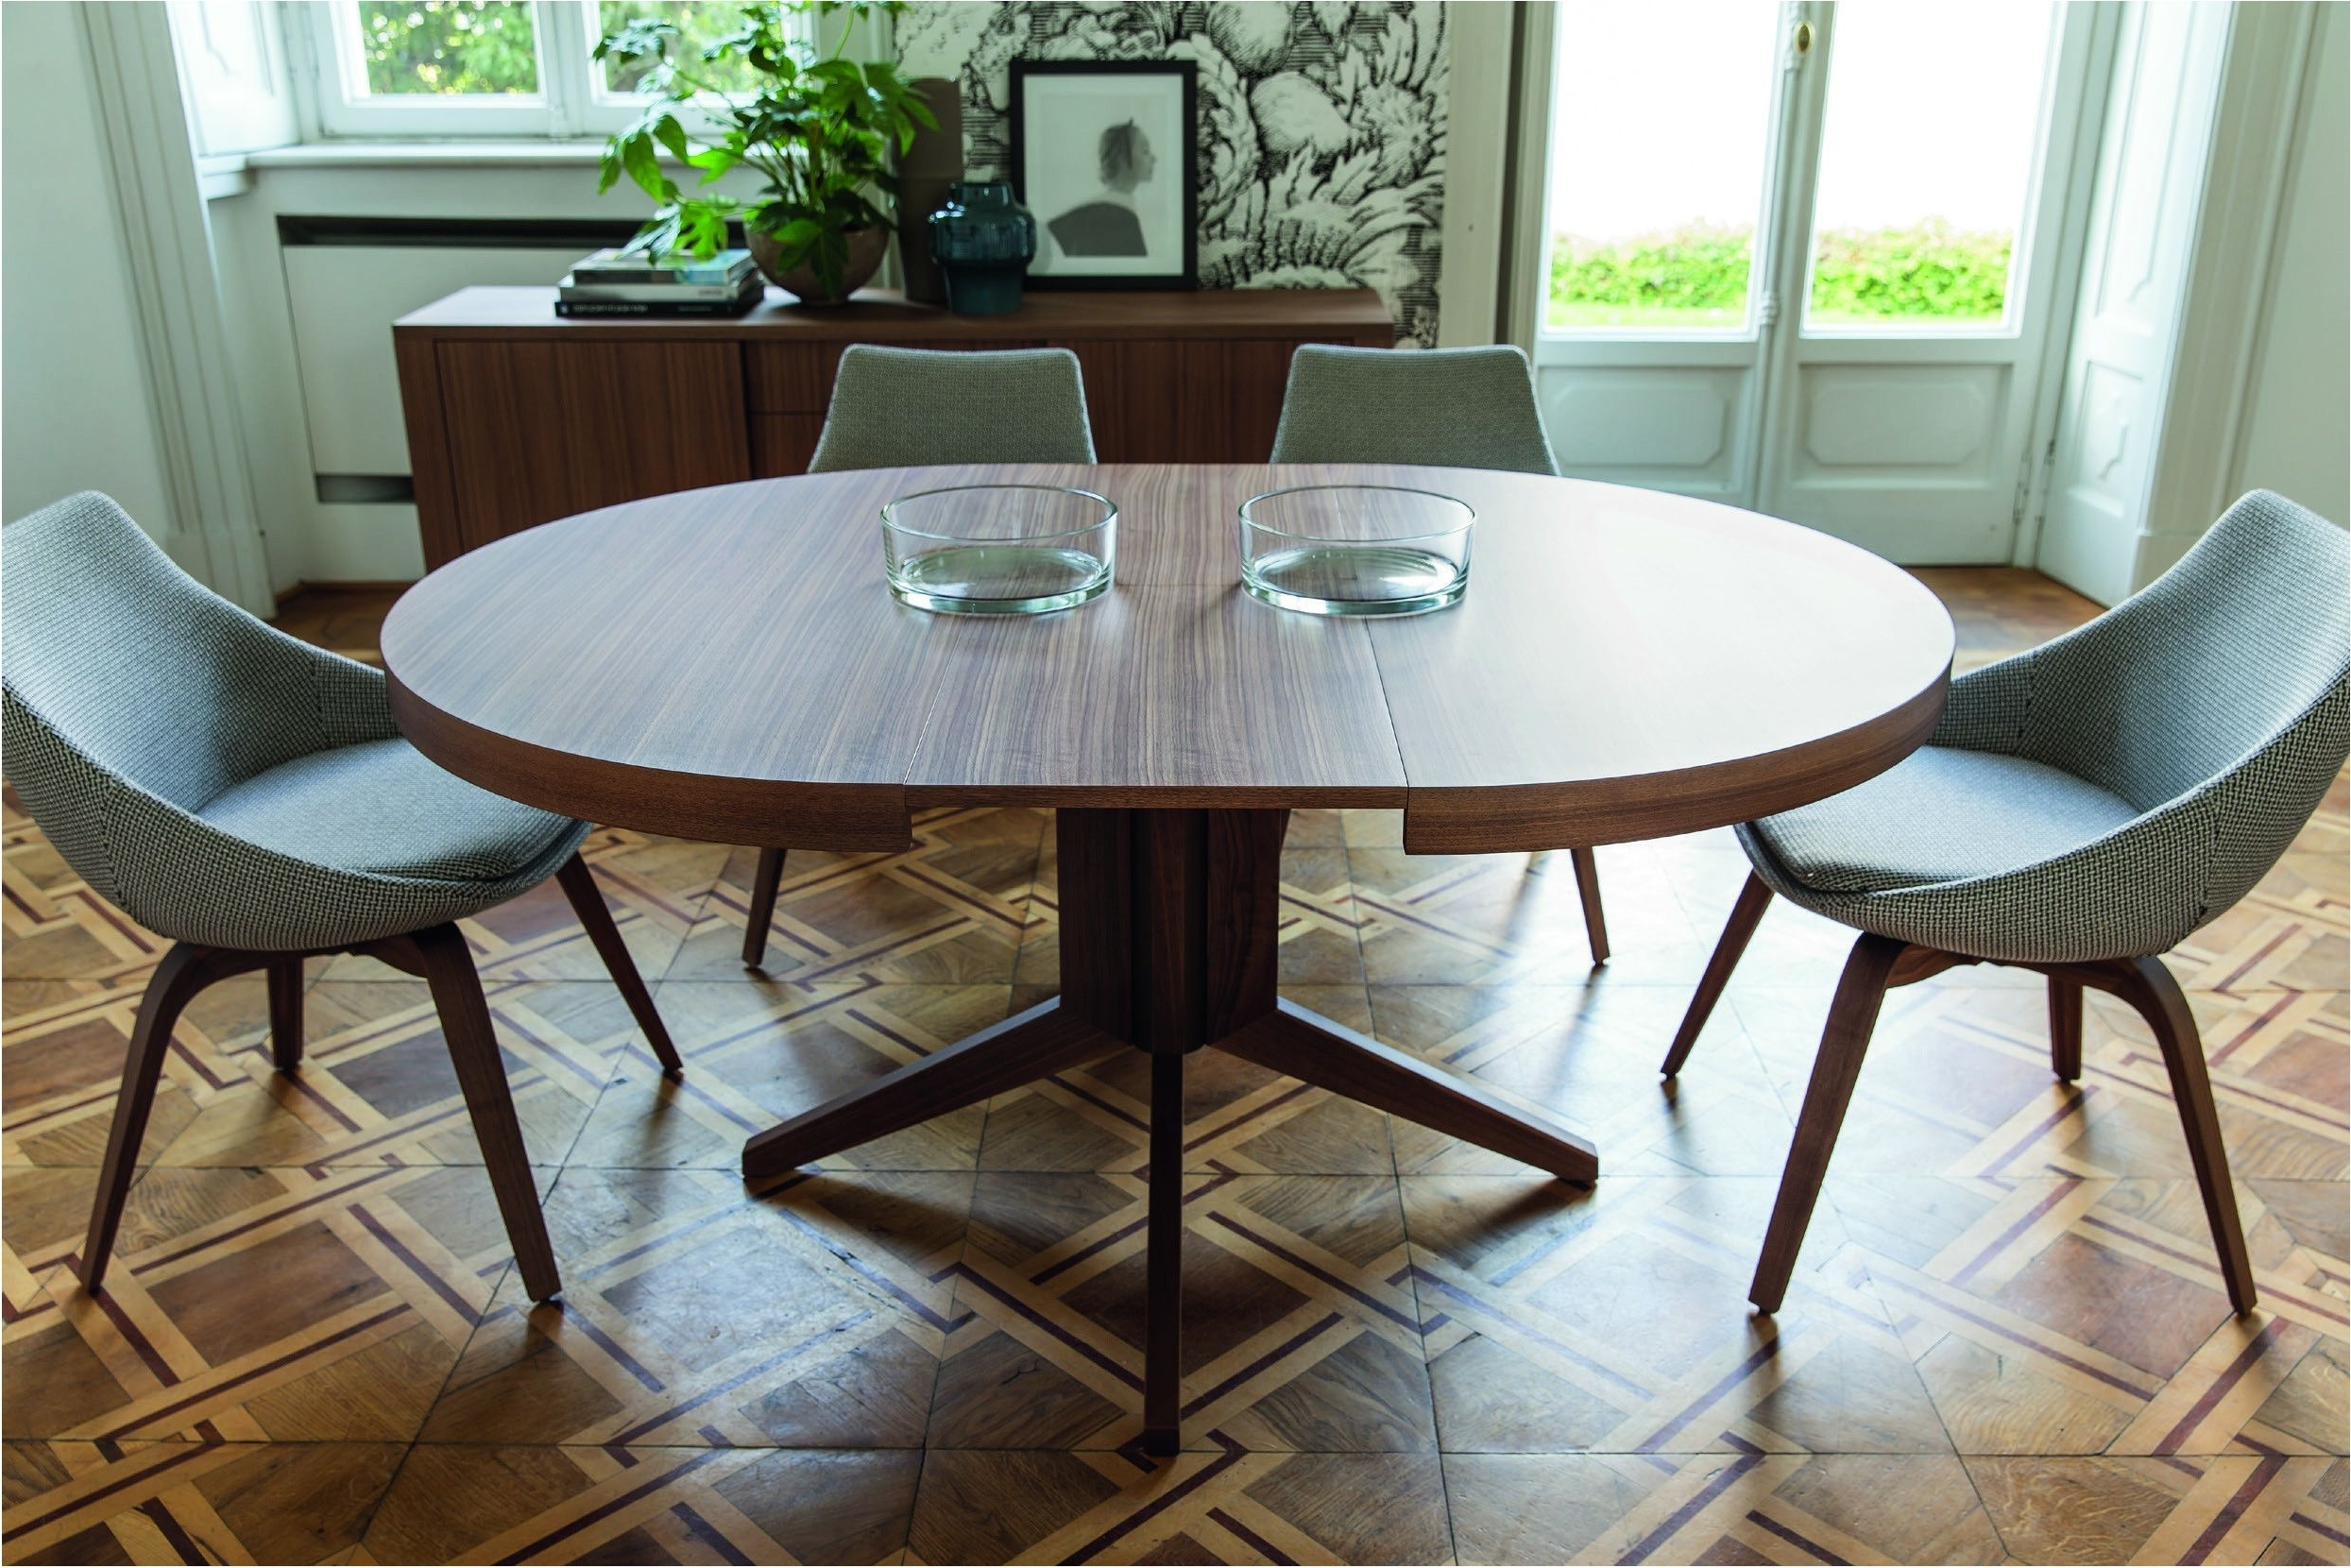 2018 Oval Dining Tables For Sale Throughout Fantastic Top 52 Perfect Modern Dining Chairs Oak Table Glass (View 4 of 25)